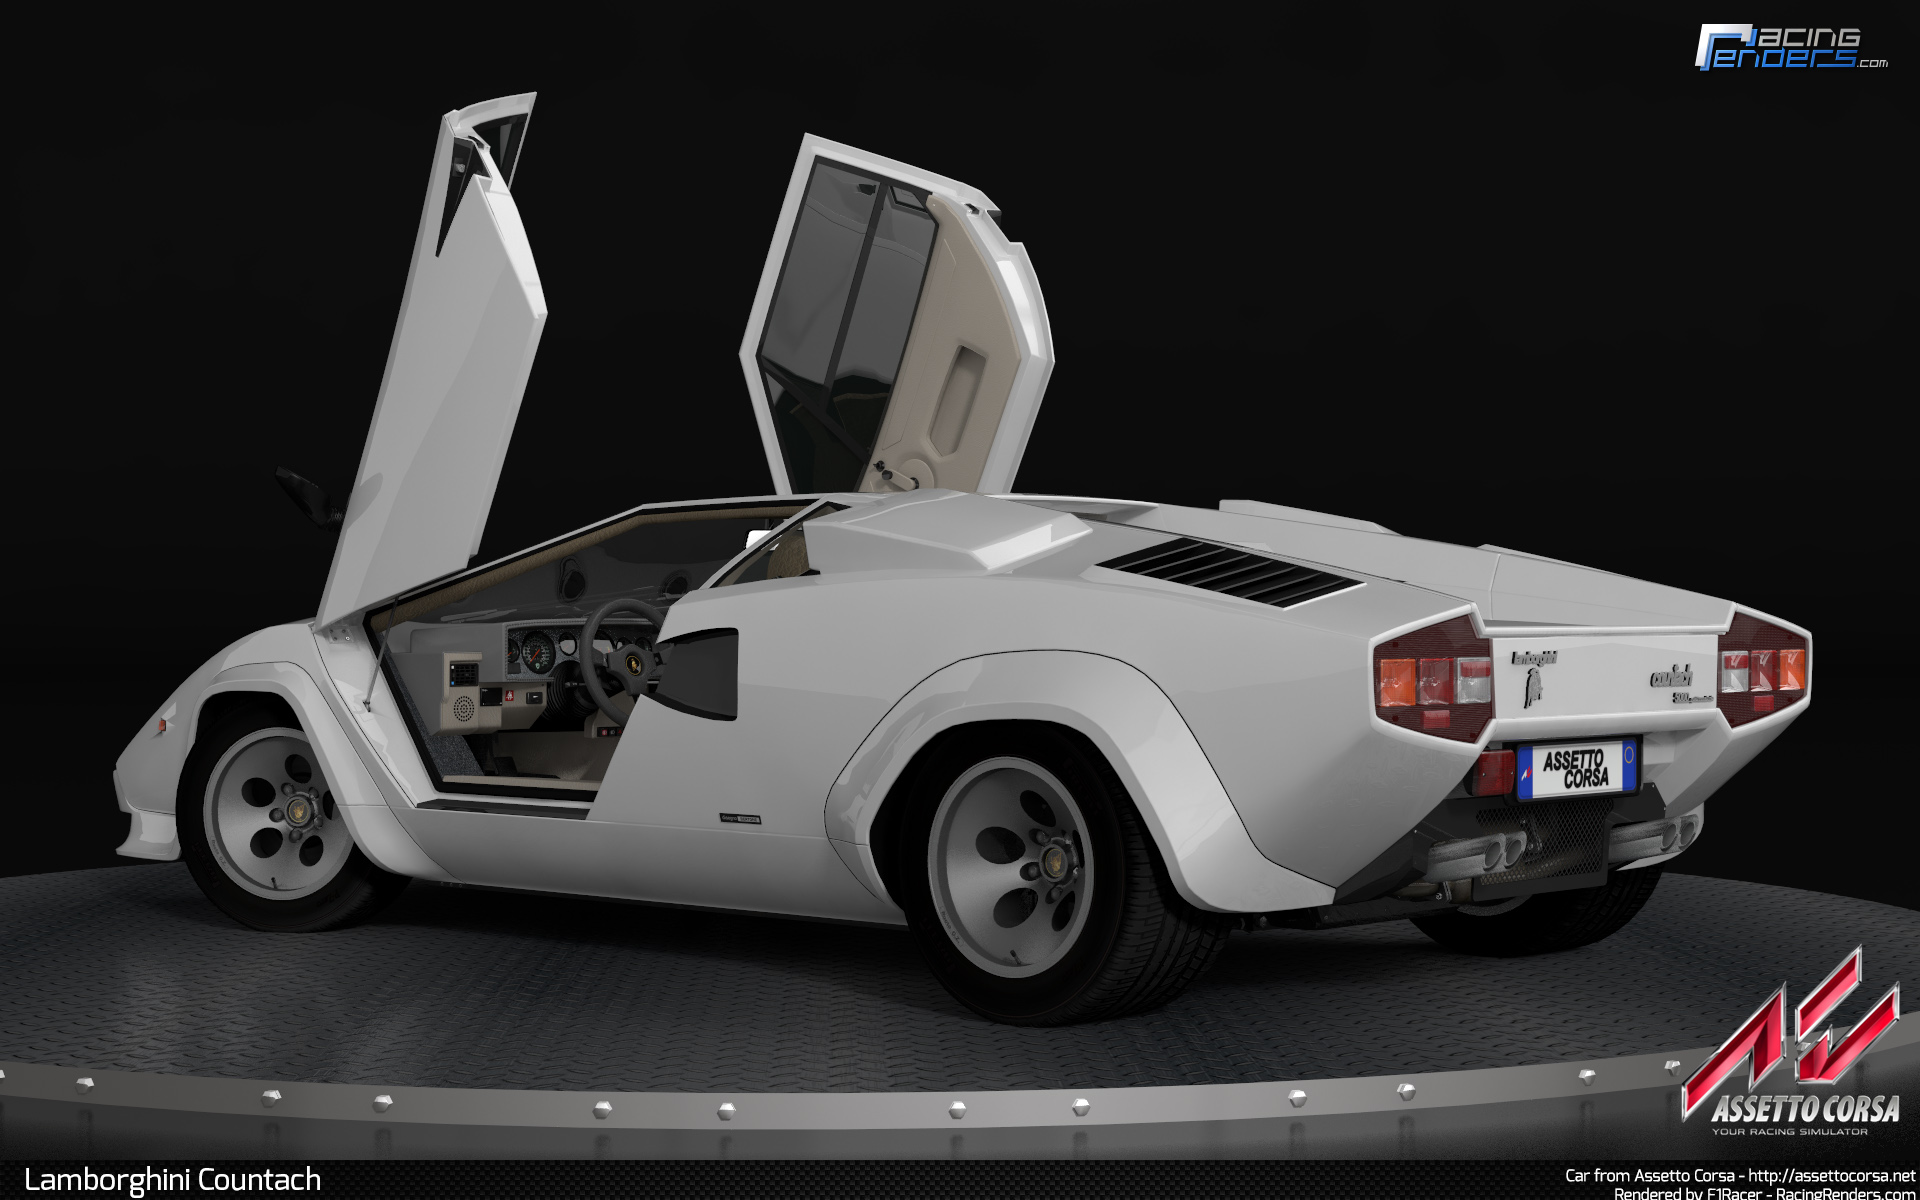 Countach-6b Surprising Lamborghini Countach Real Racing 3 Cars Trend